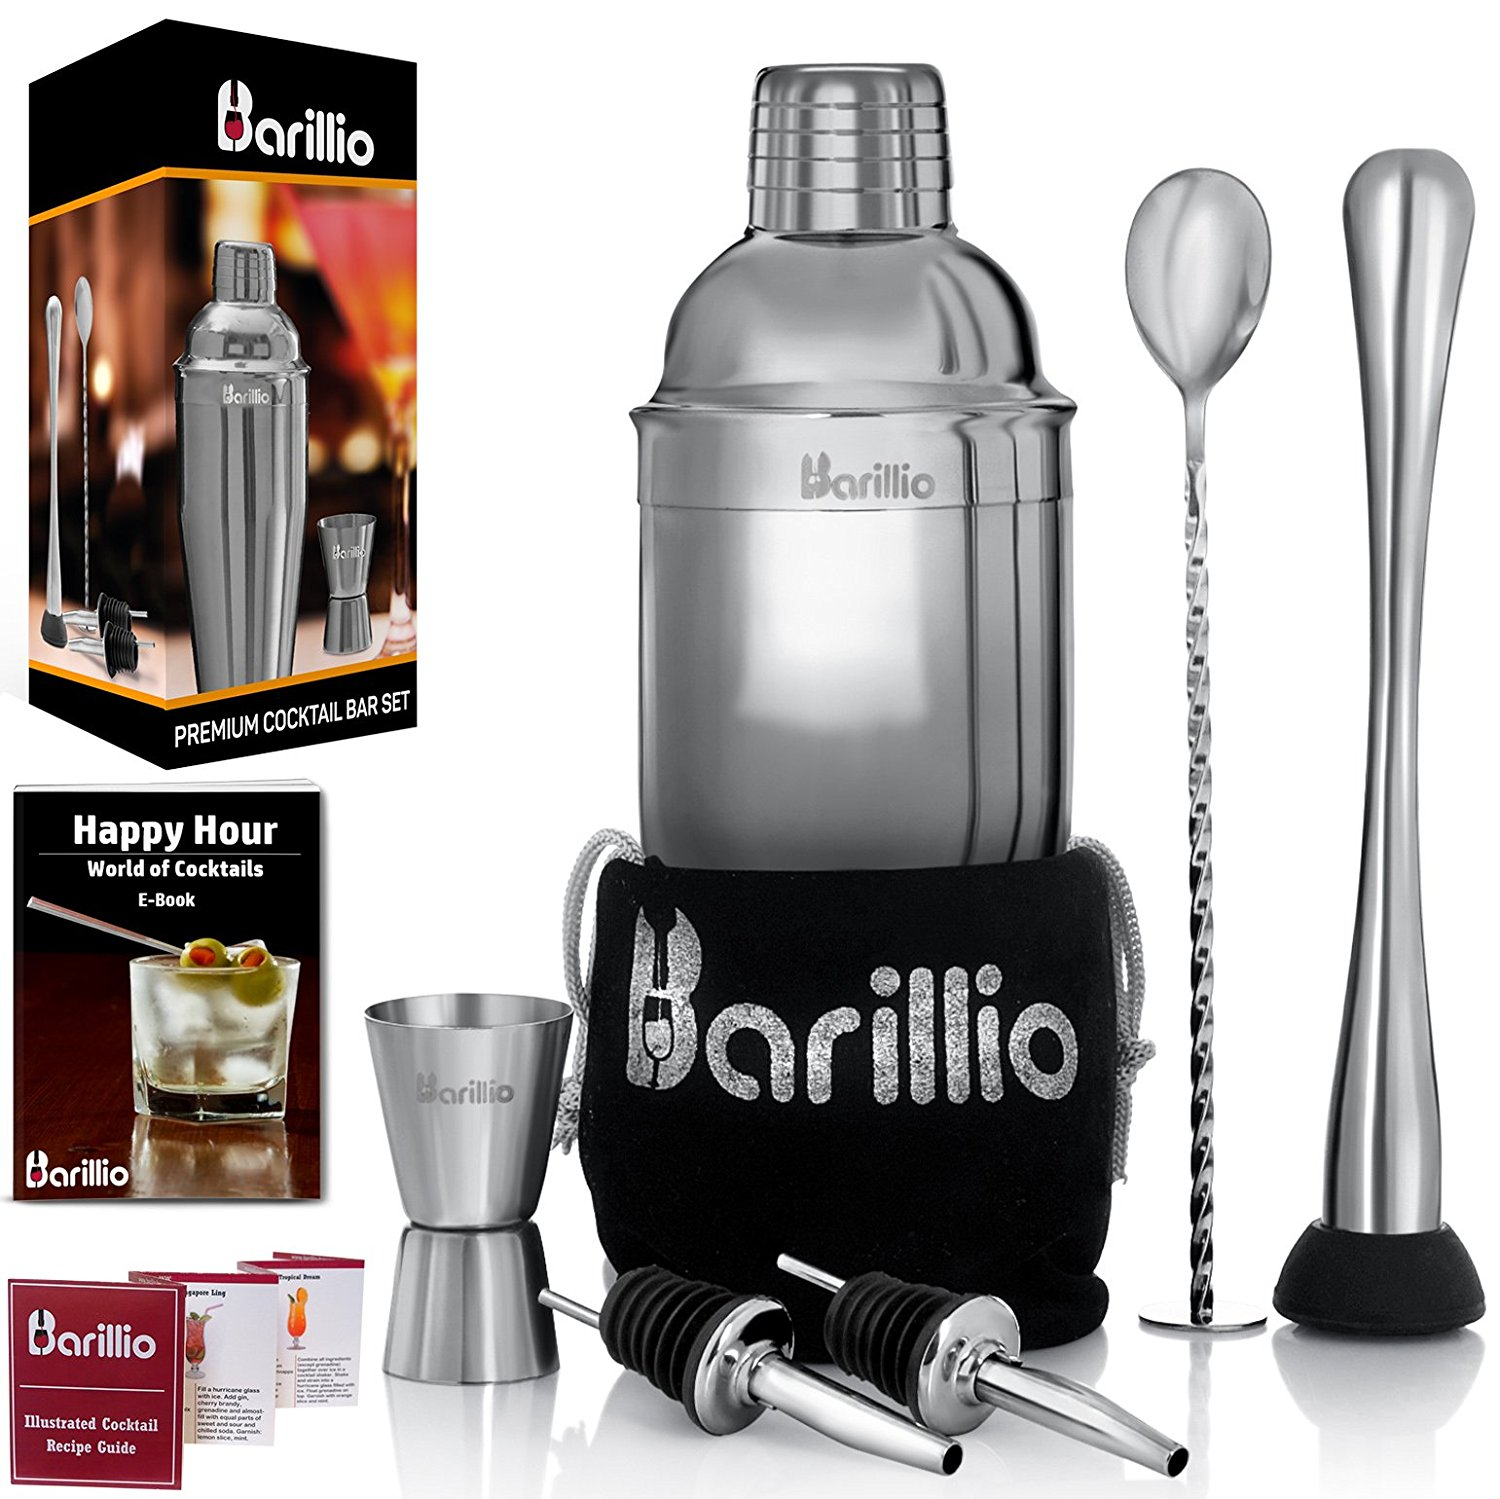 Barillio elite cocktail shaker set